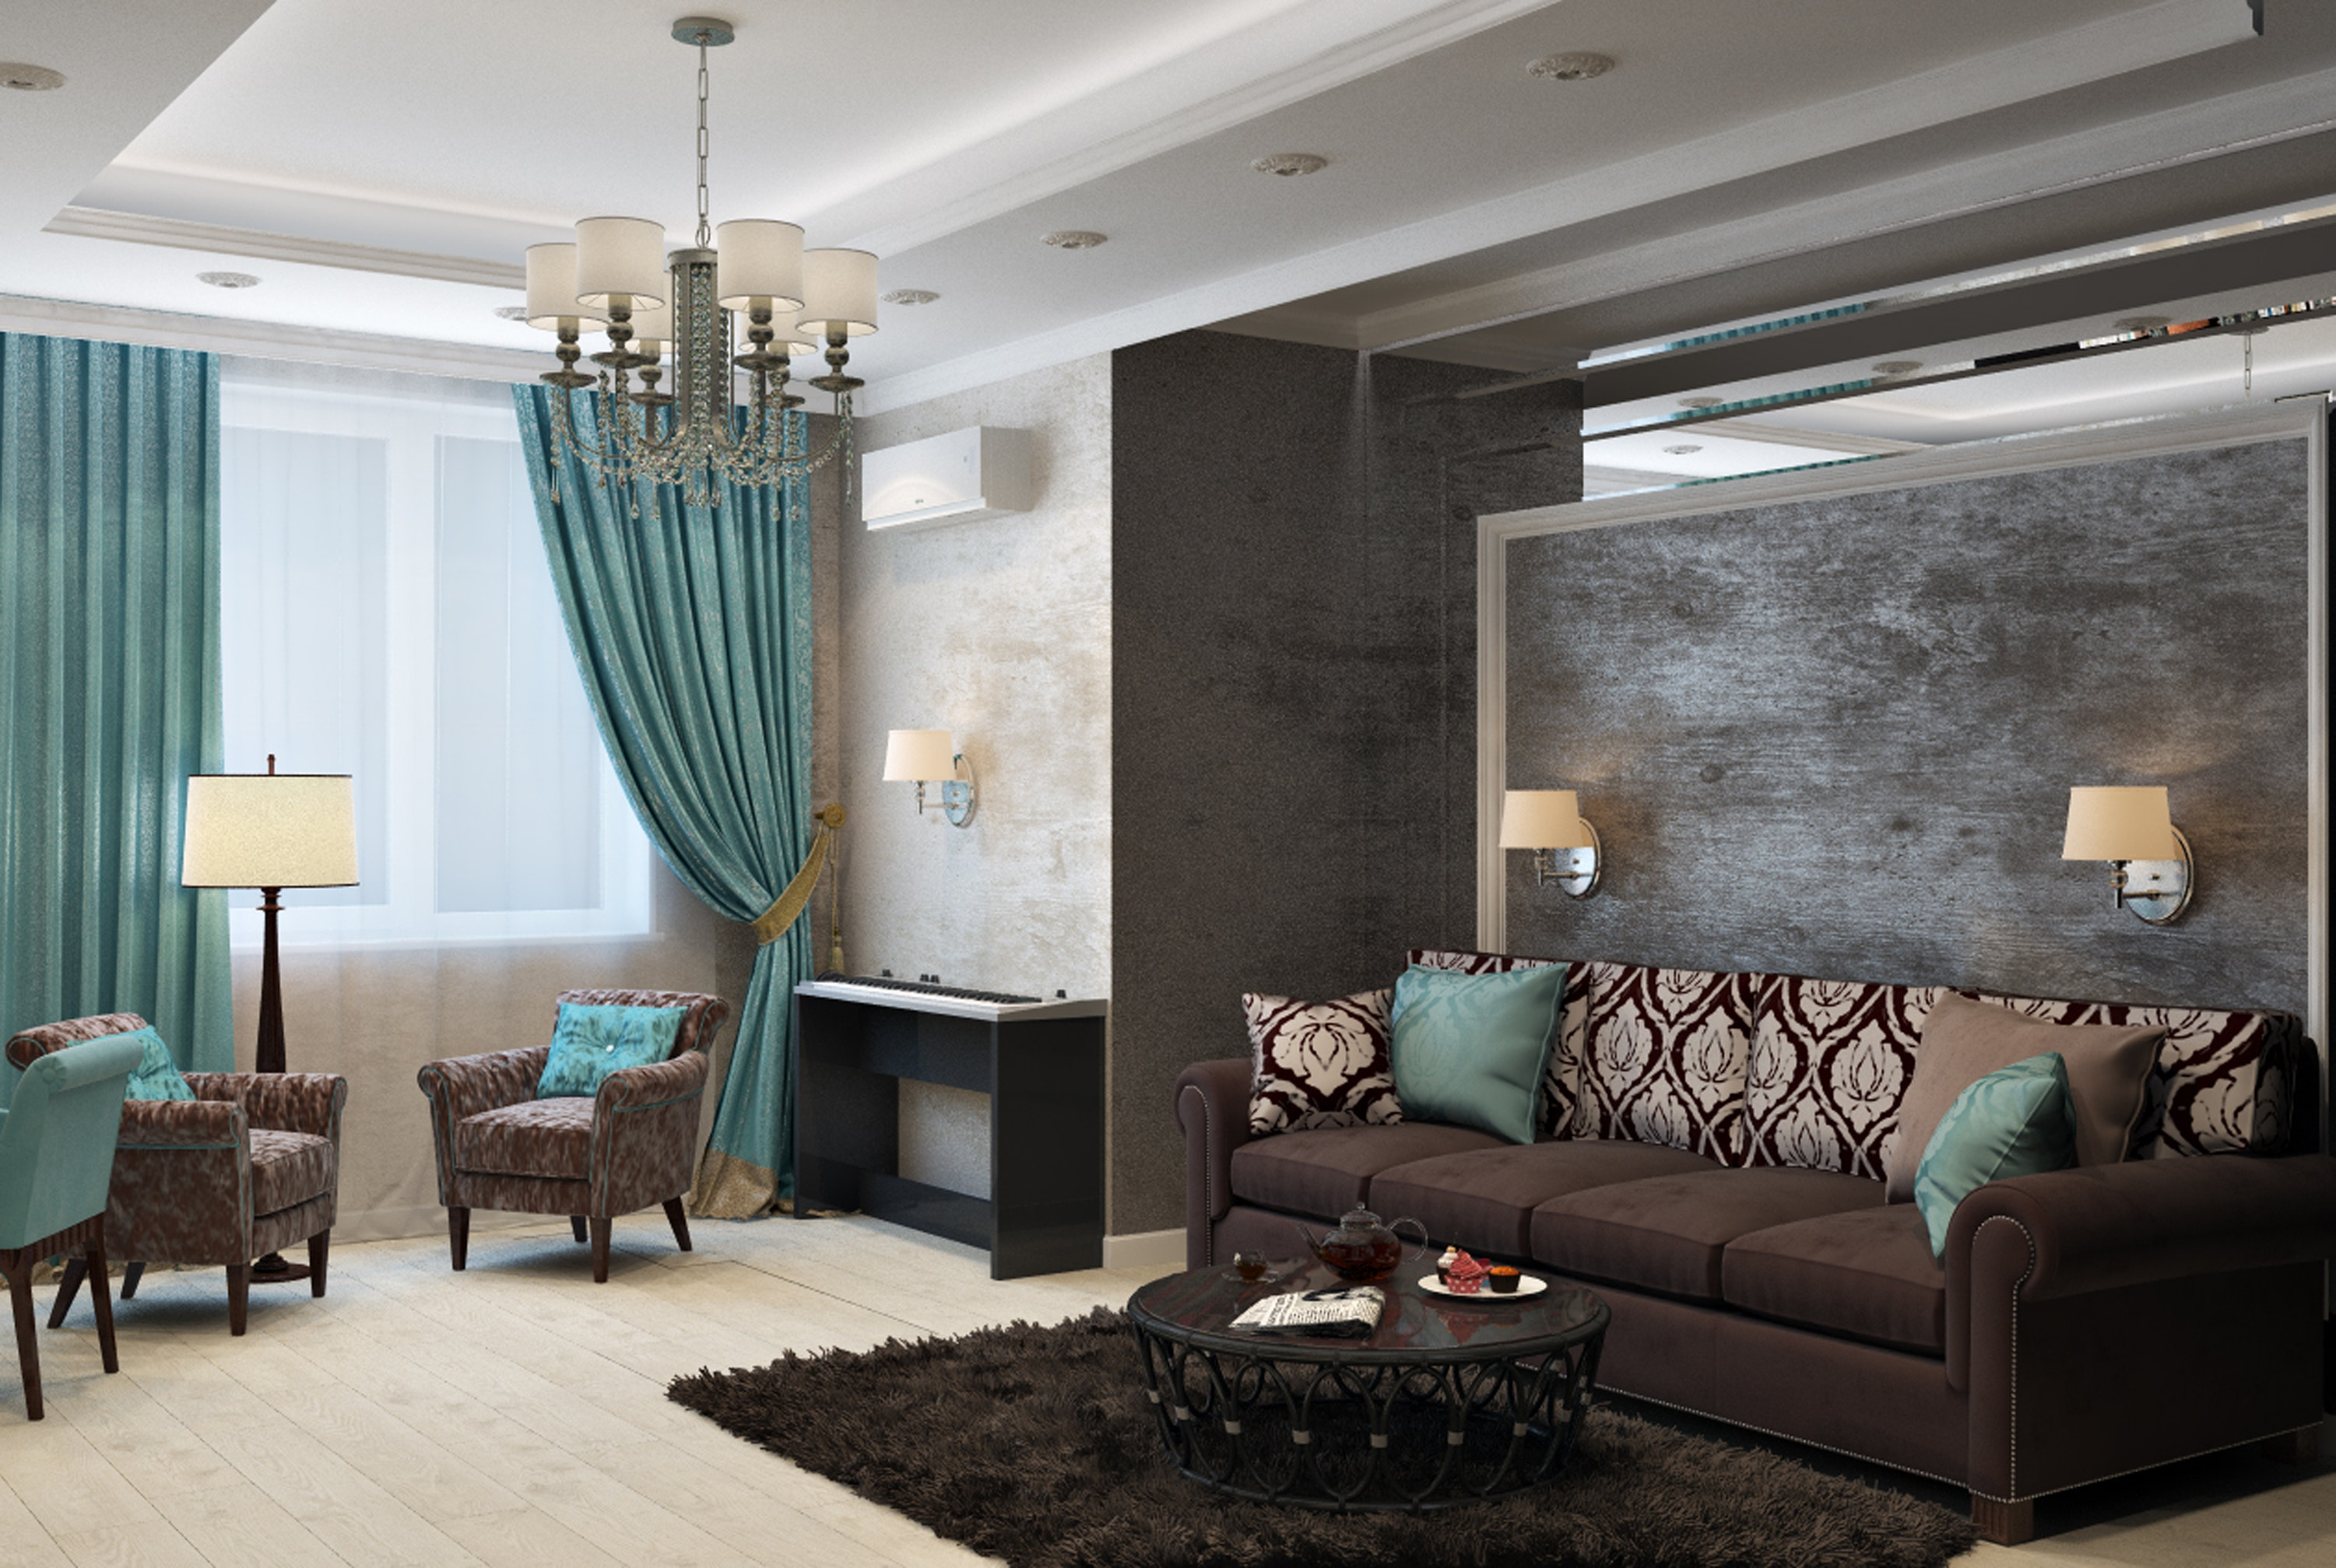 Incorporating Chandeliers To Add Charm To Your Interiors!